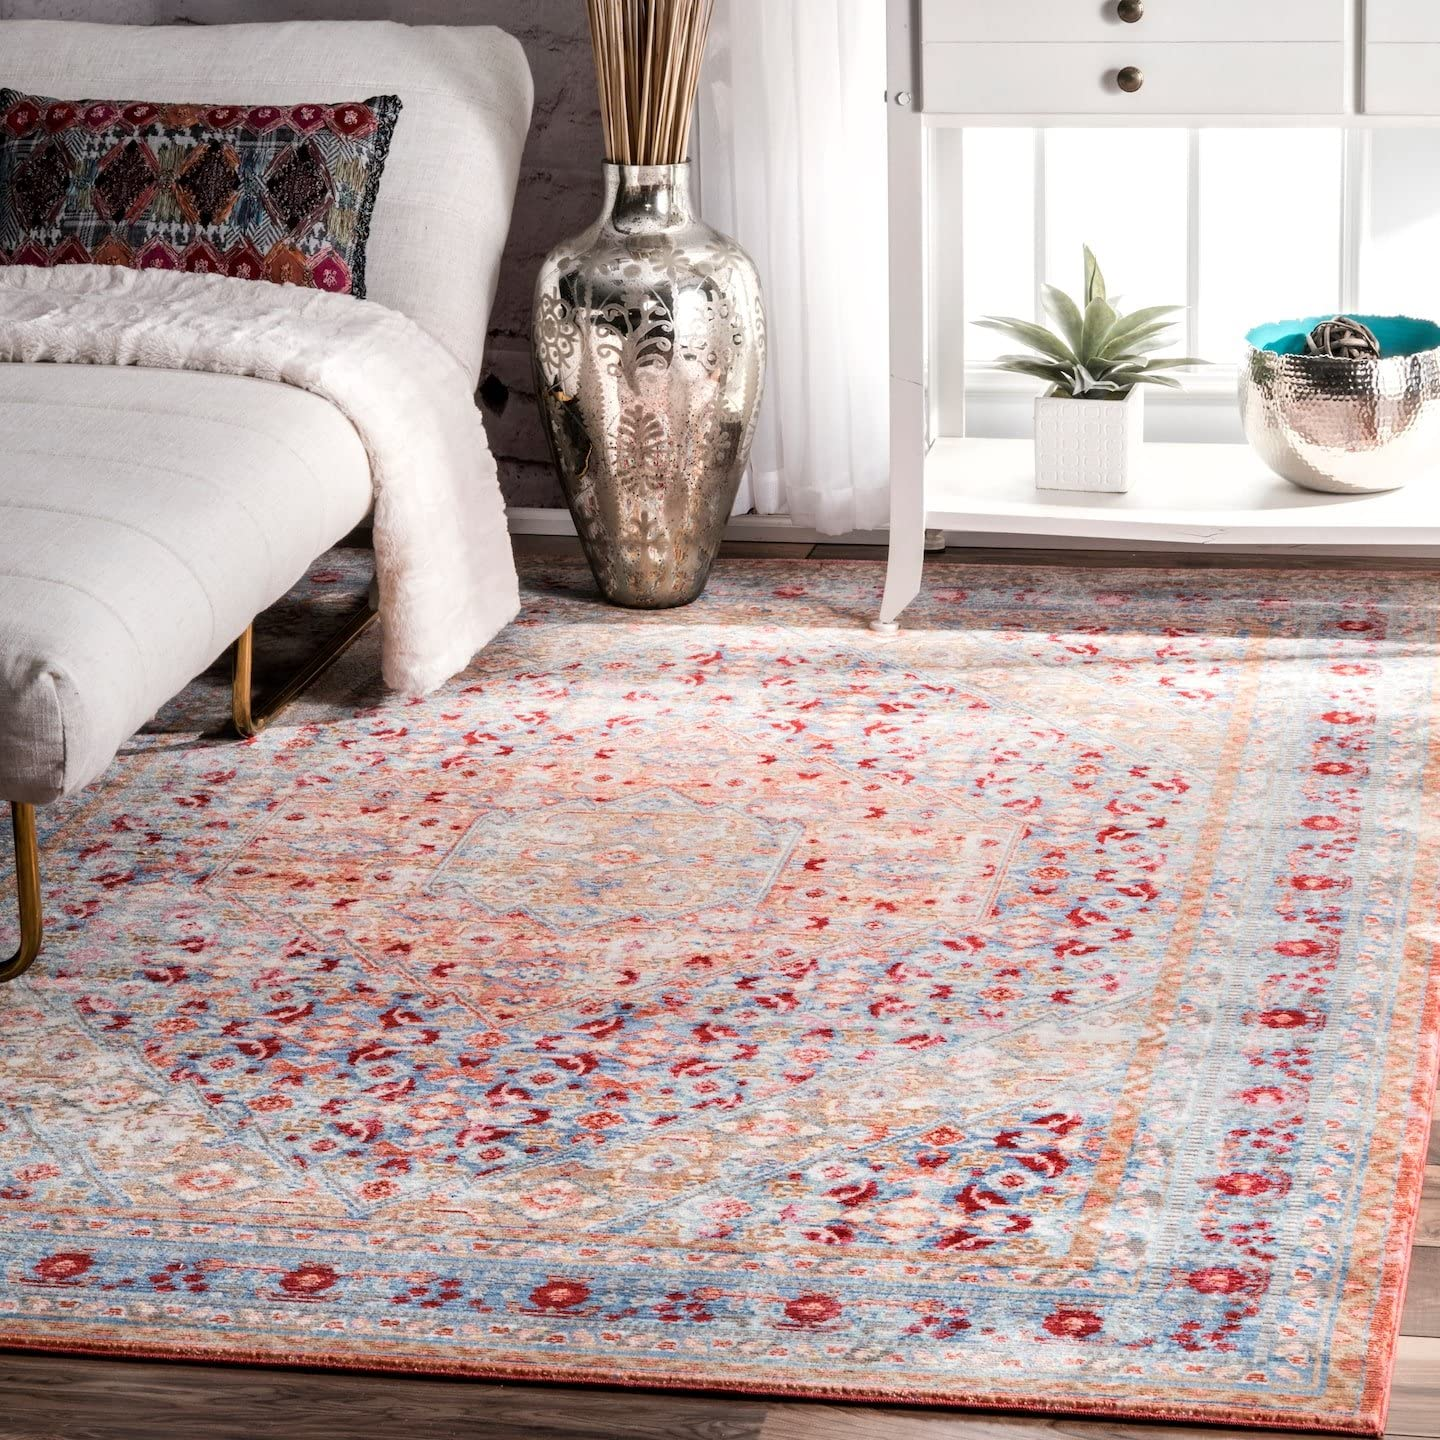 nuLOOM Daria Persian Floral Max 61% OFF Area Rug x Spring new work one after another Blue 6' 4' Light